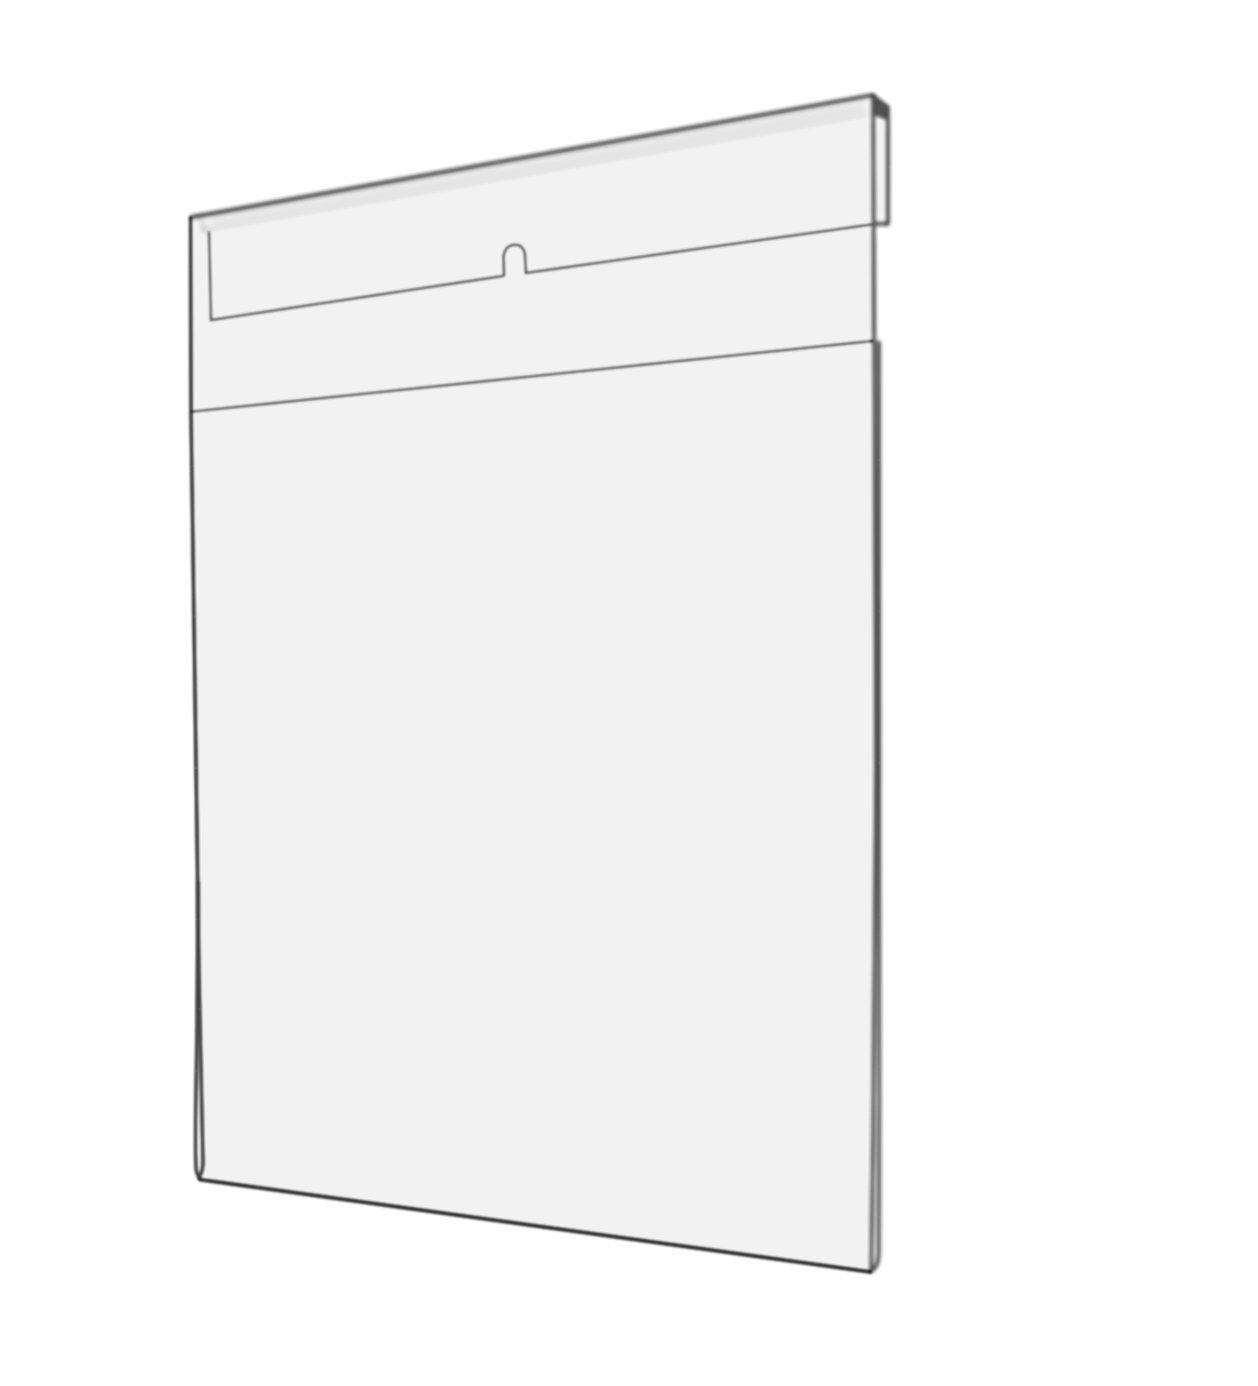 Marketing Holders Wall Mount Adhesive Literature Menu Poster Advertisement Flyer Frame Sign Display 8.5''w x 11''h Pack of 6